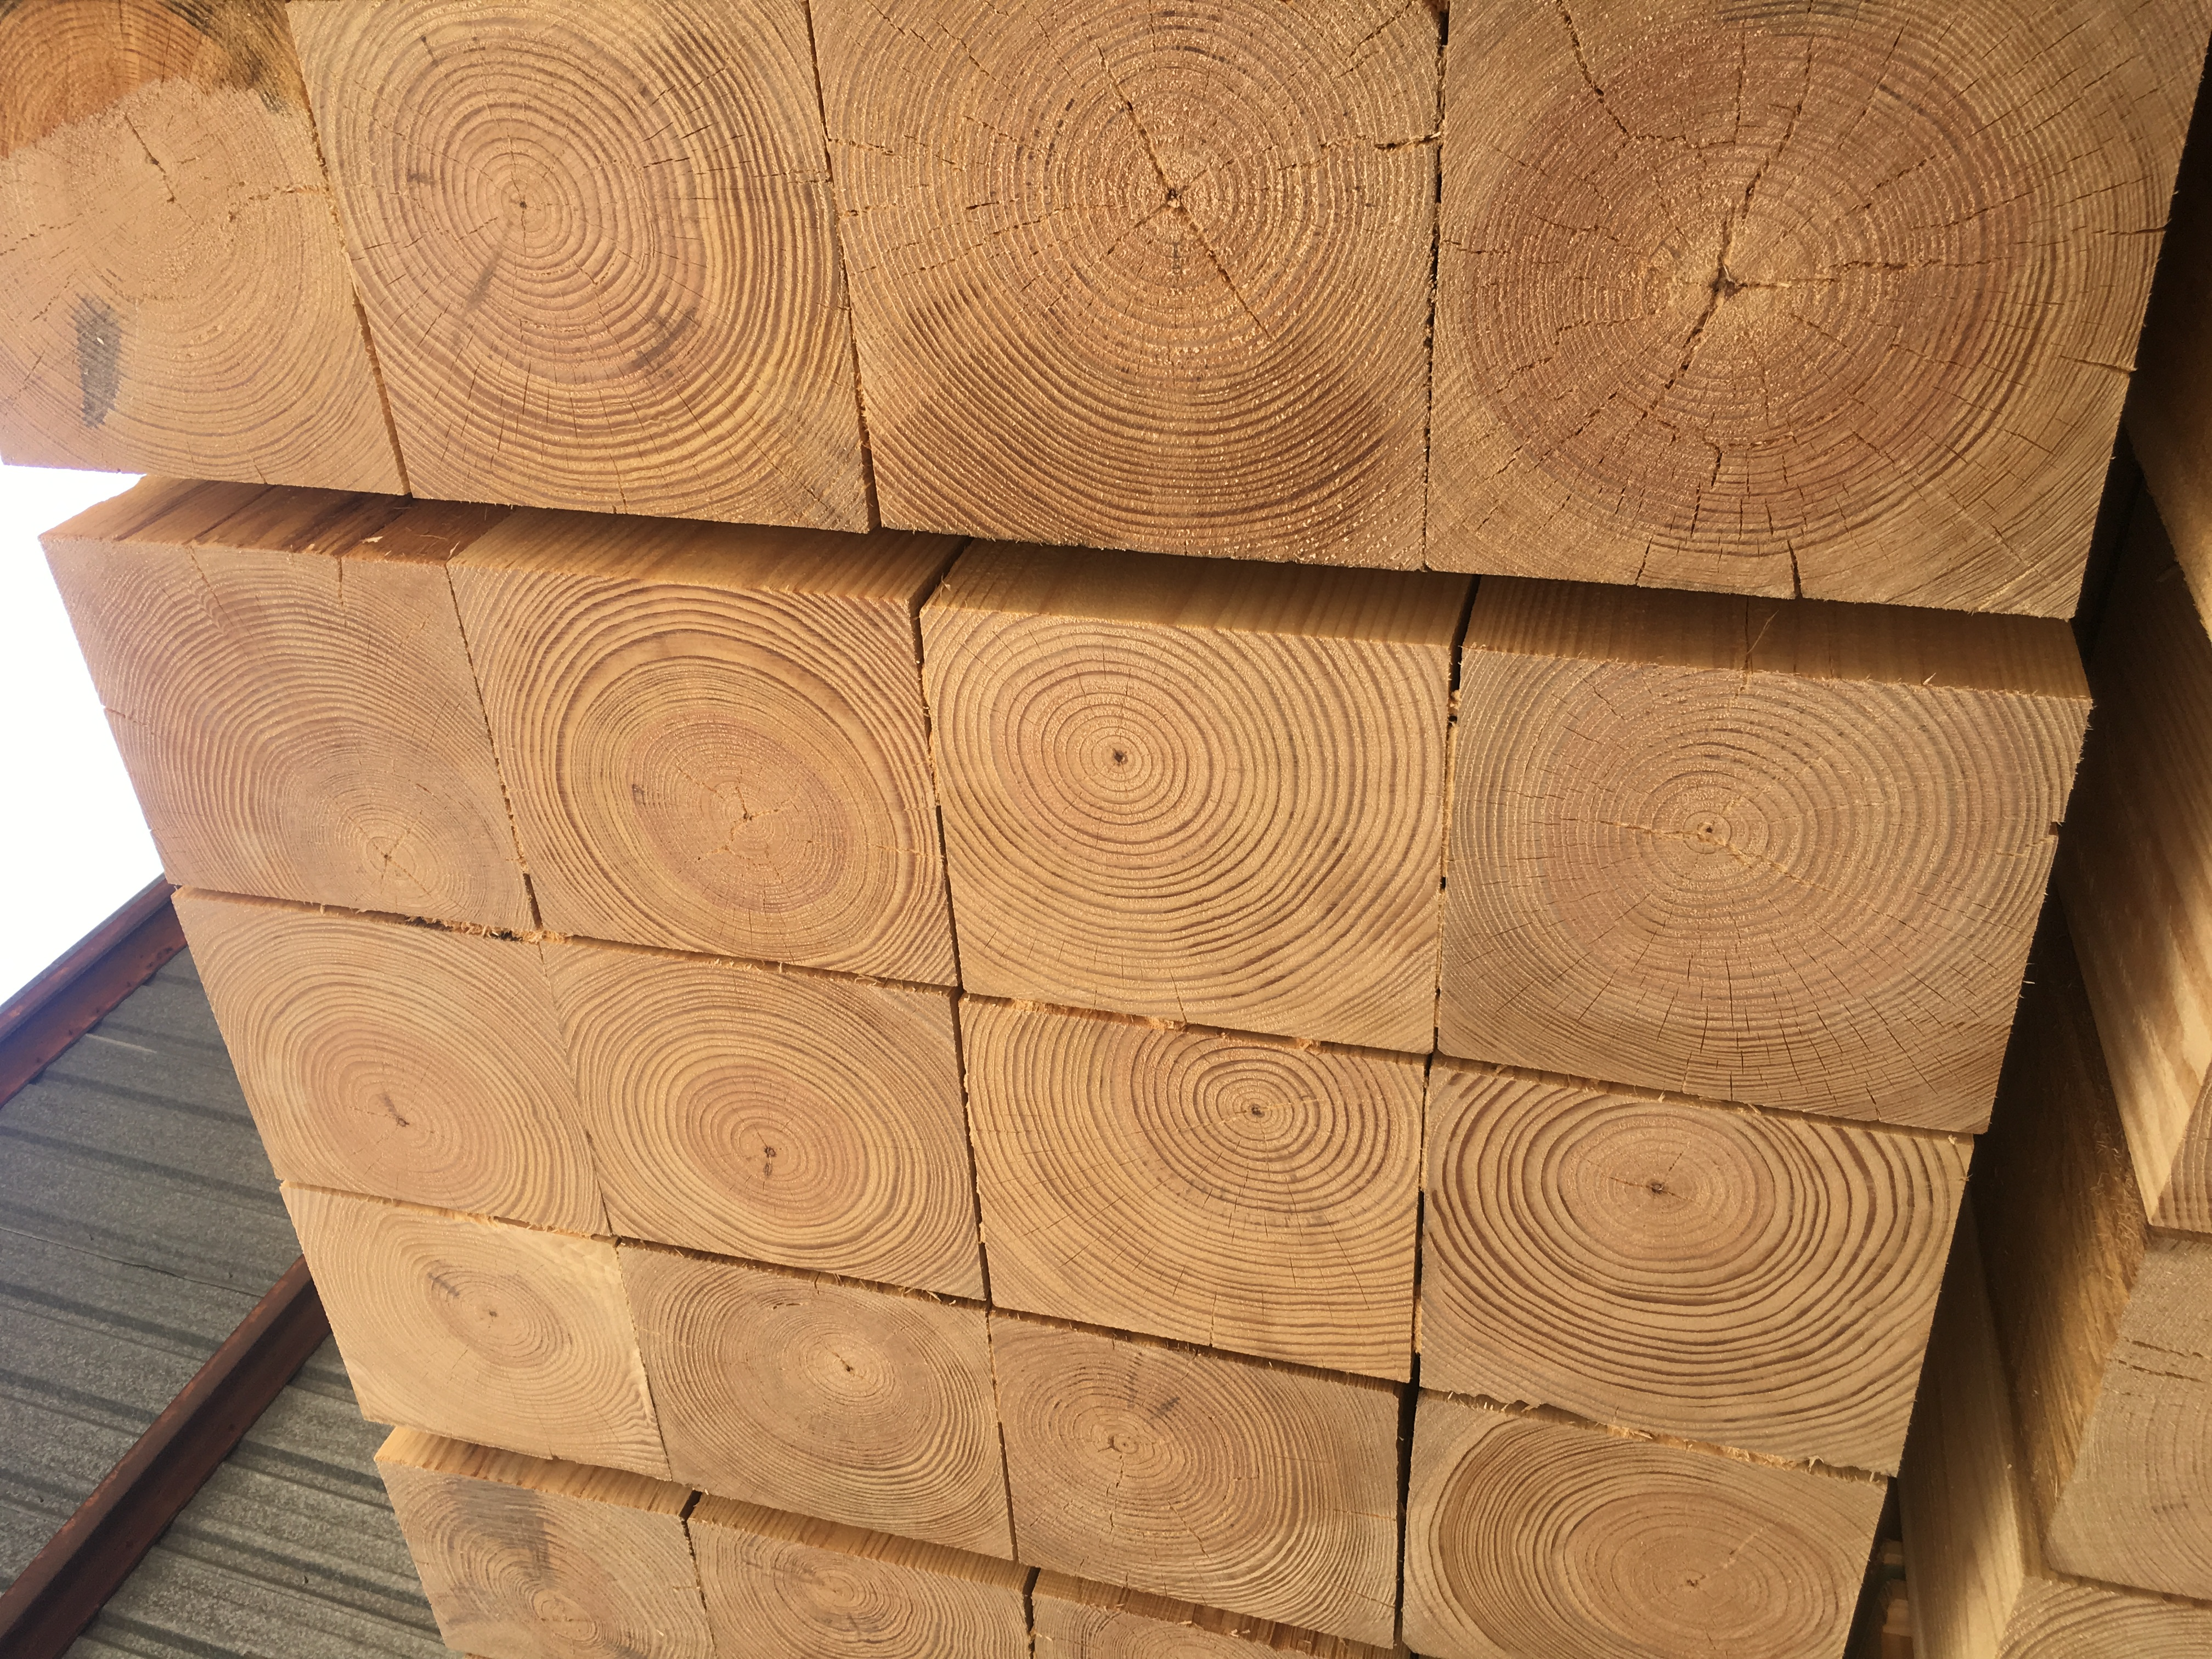 End-trimmed timbers